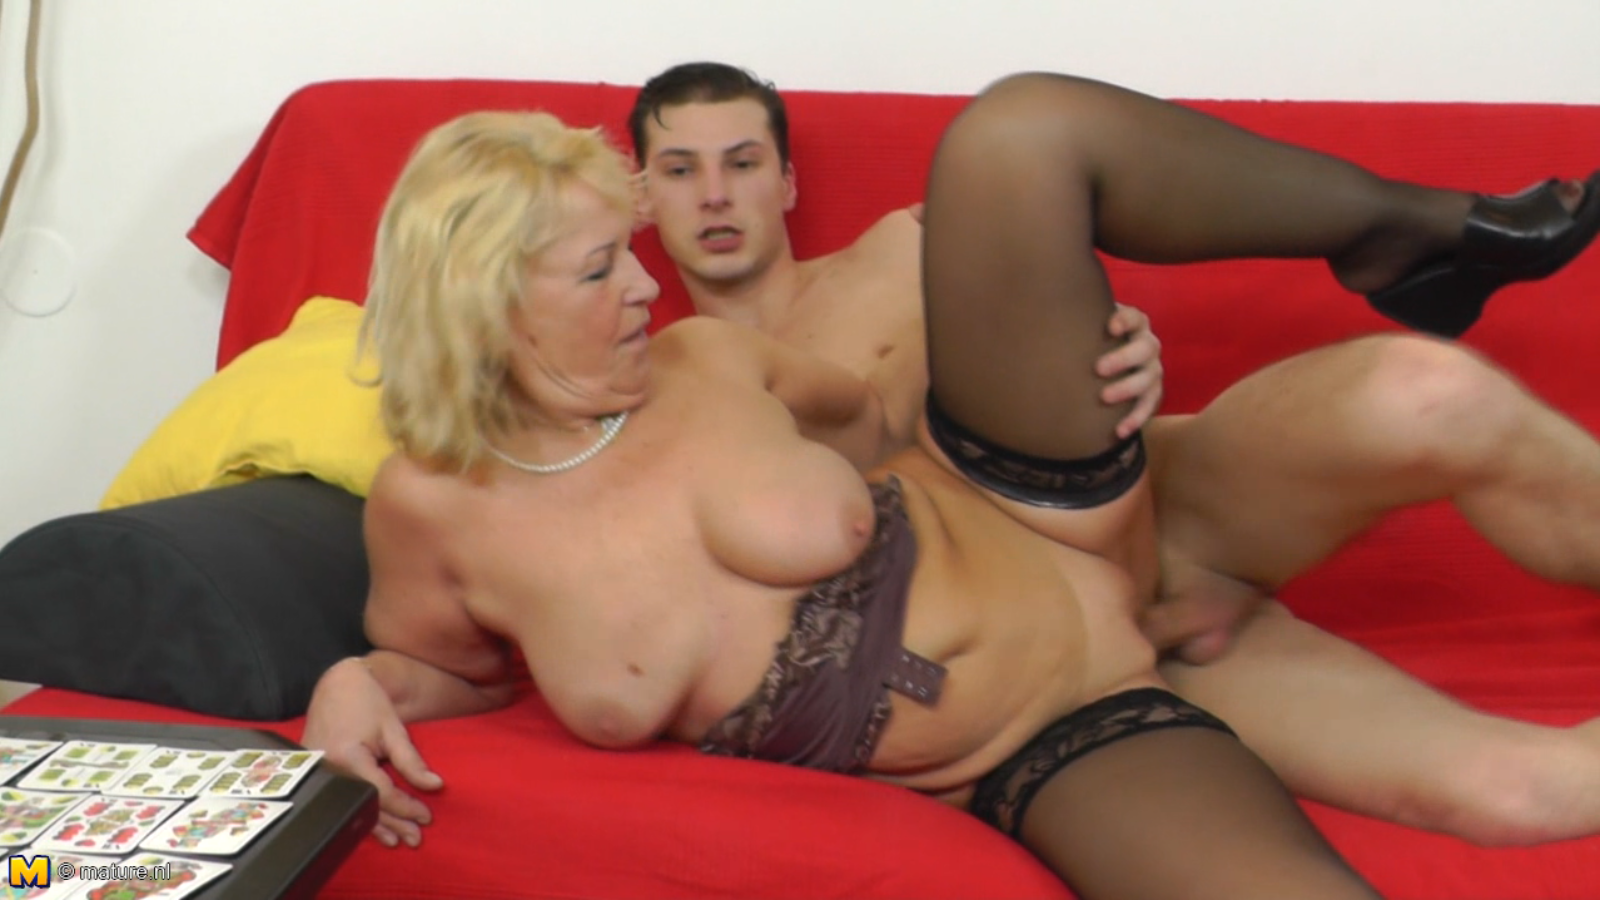 prive sex breda sex film grtis